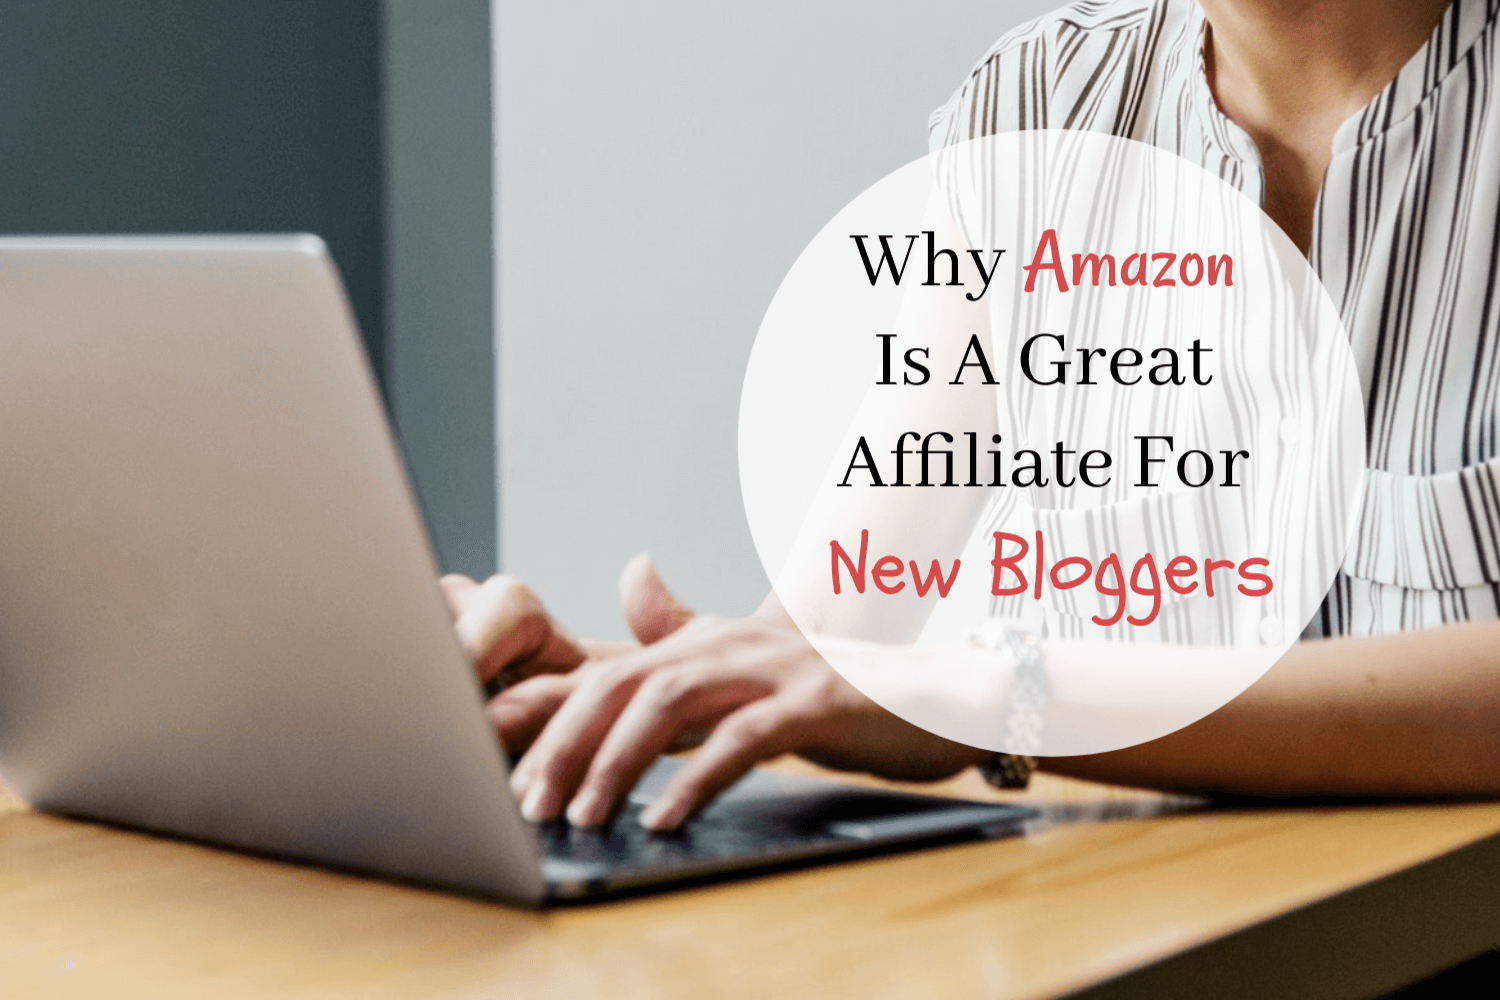 Why Amazon Is A Great Affiliate For New Bloggers